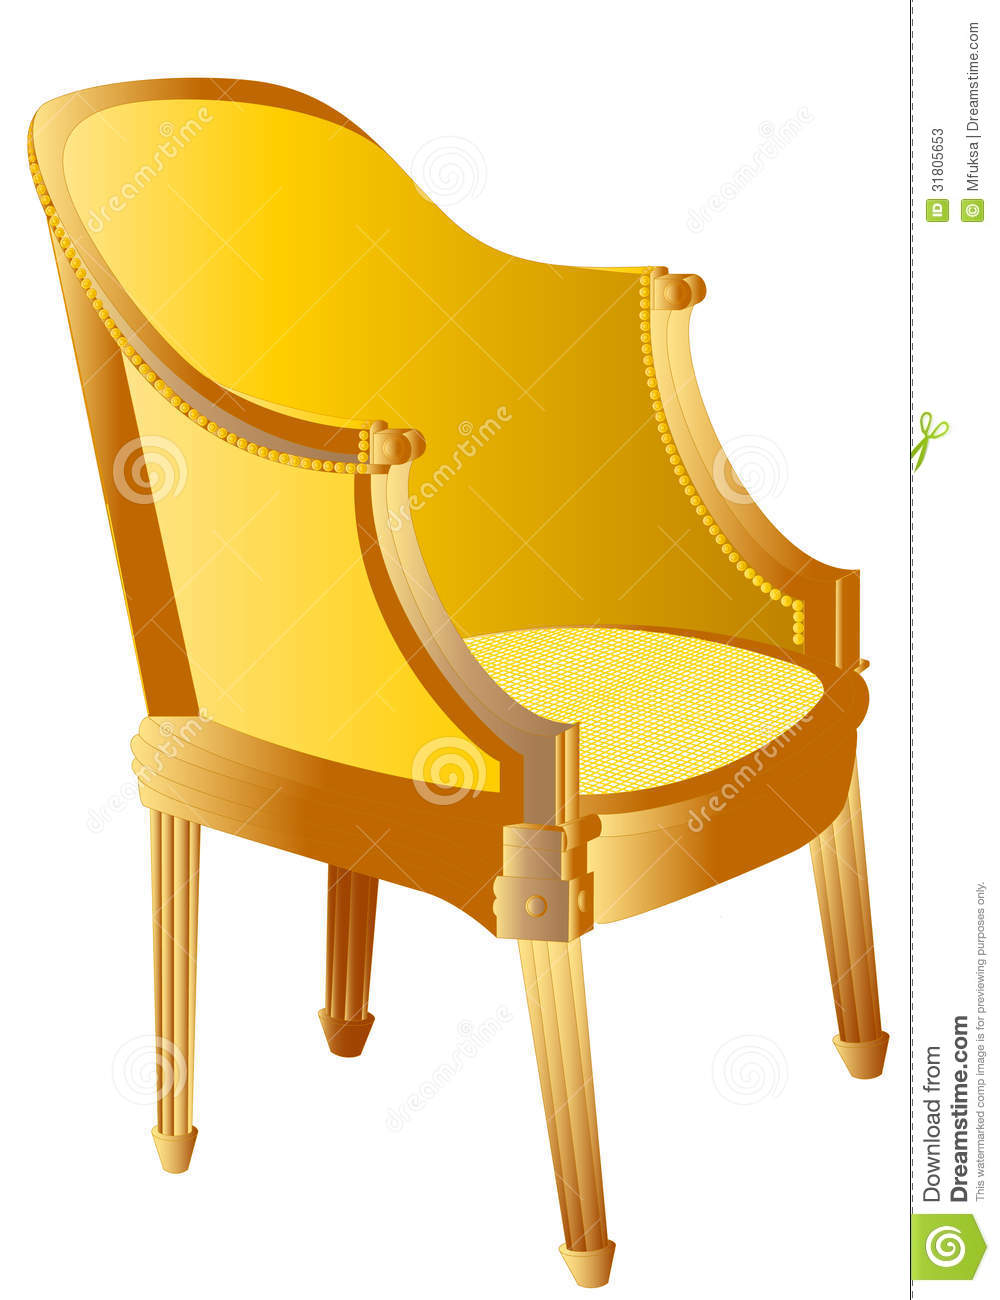 Wooden chair stock photos image